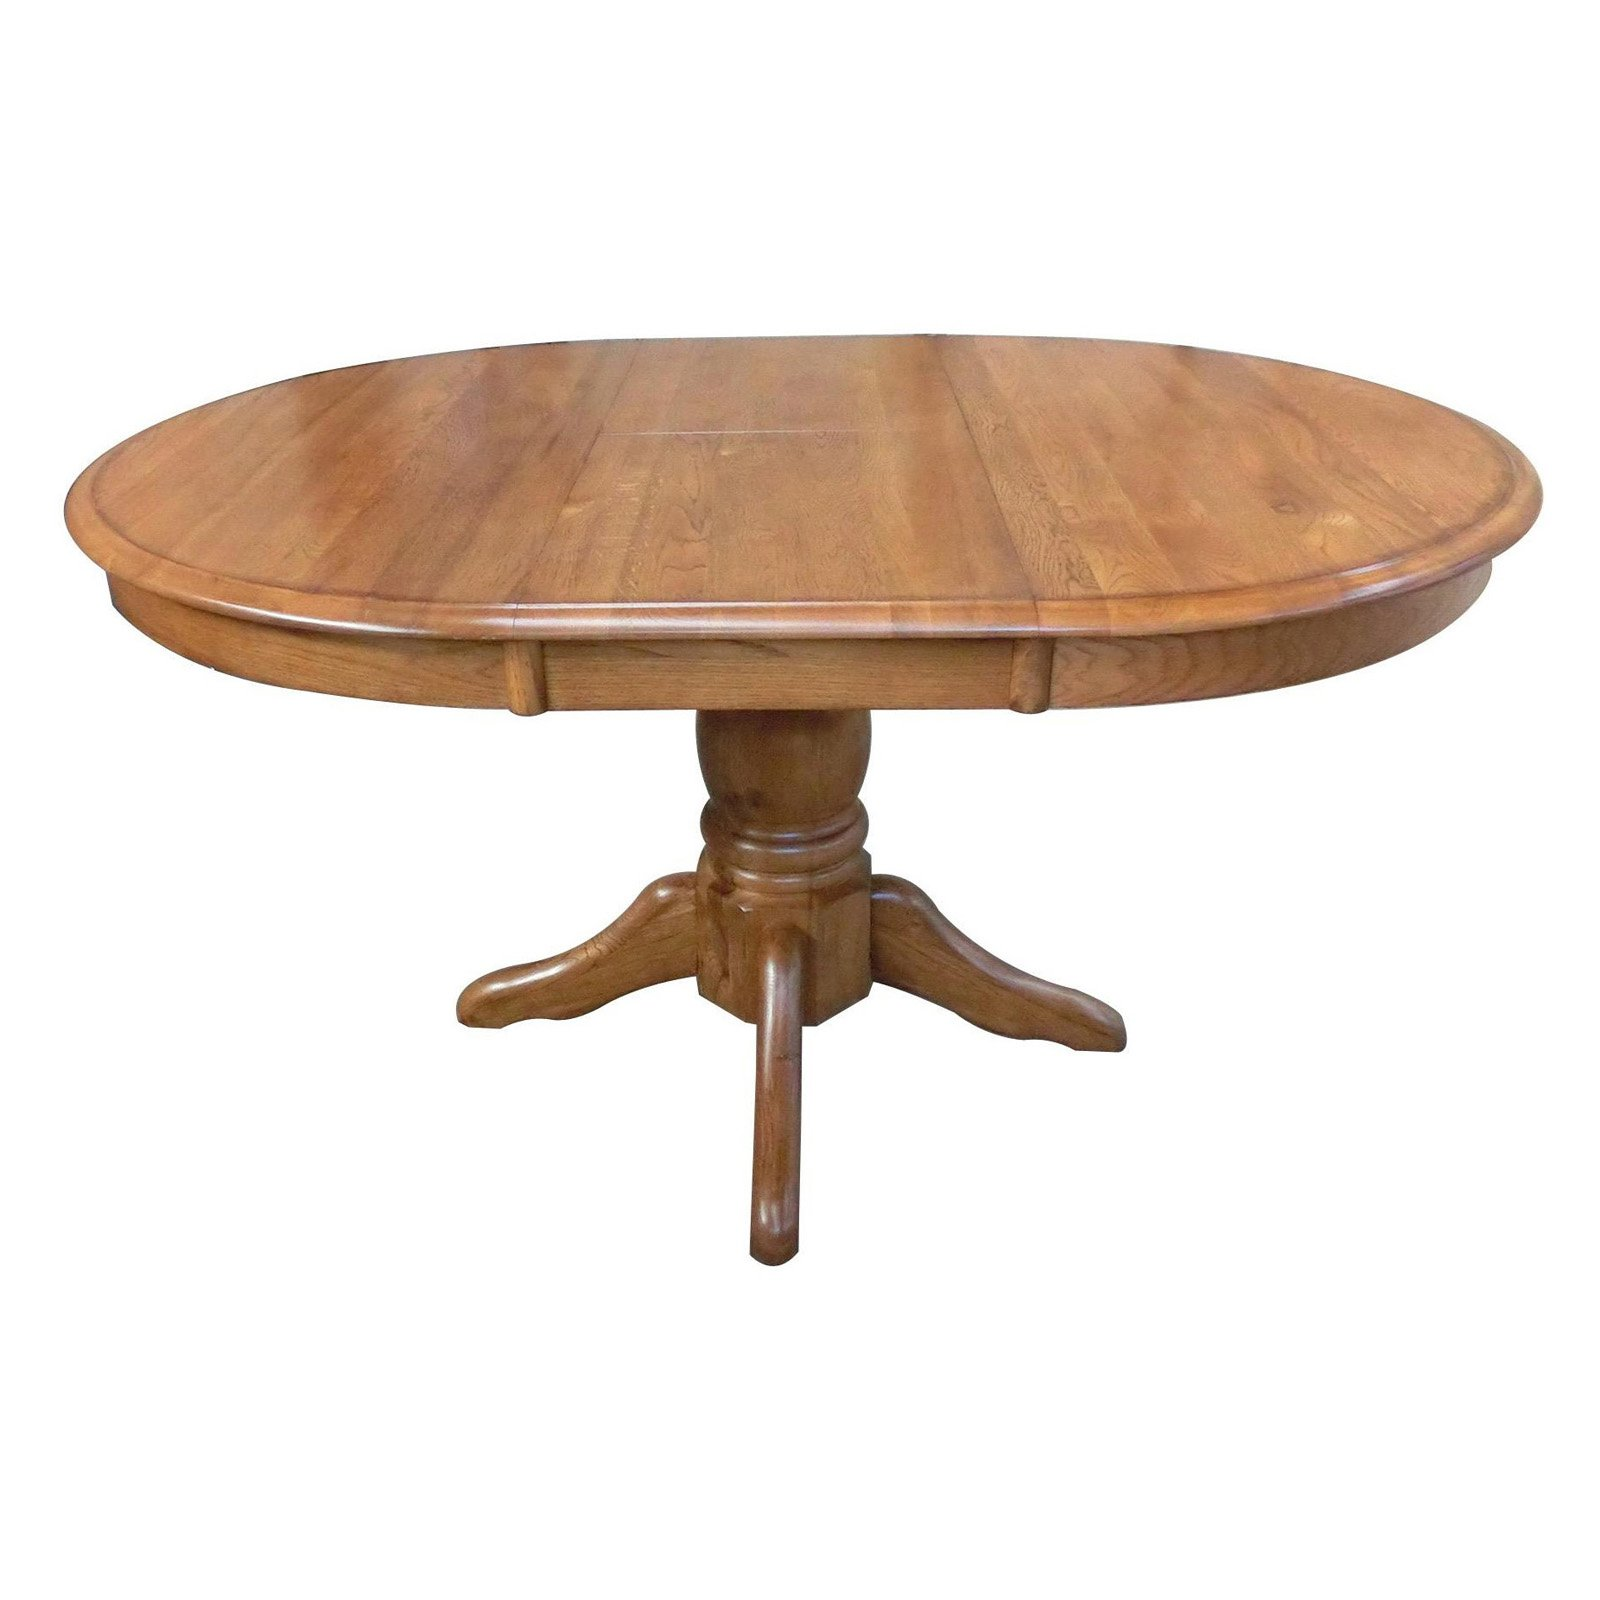 Chelsea Home Lacewood Pedestal Dining Table by Chelsea Home Furniture LLC.